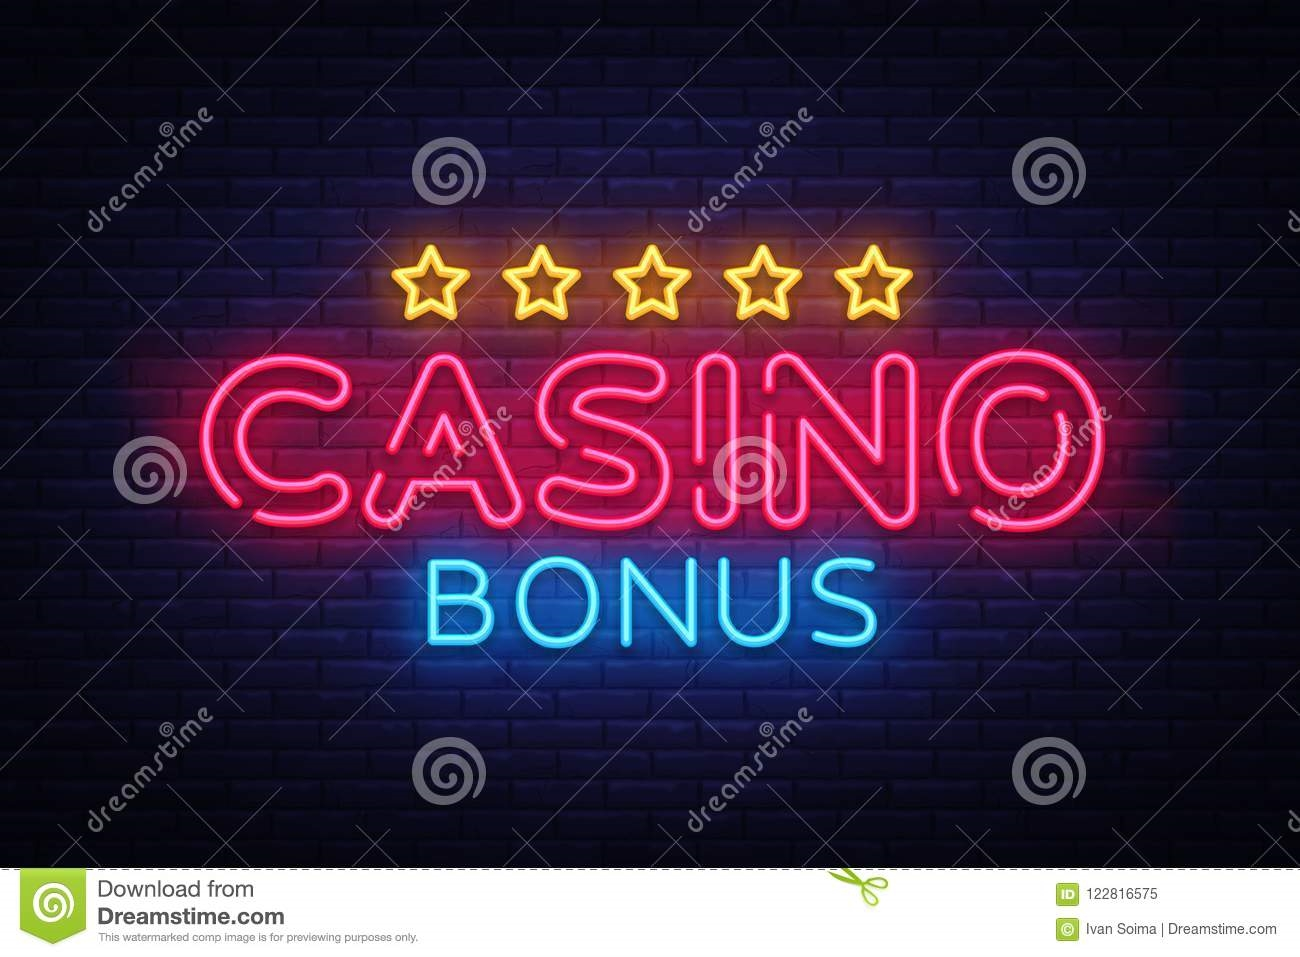 EUR 4185 NO DEPOSIT BONUS CODE at Mansion Casino